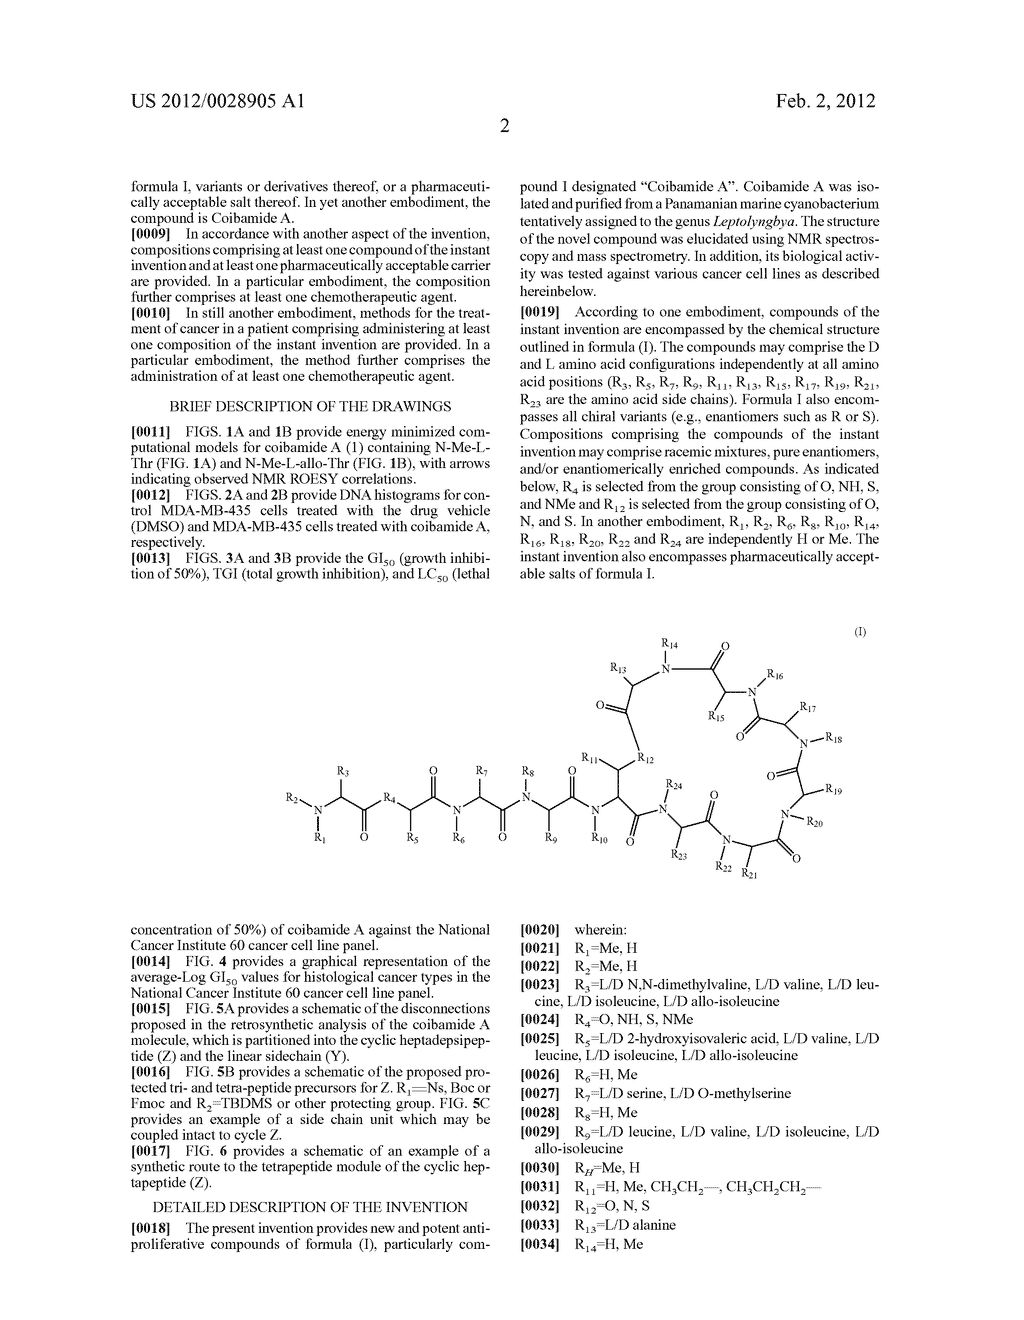 Isolation, Purification, and Structure Elucidation of the     Antiproliferative Compound Coibamide A - diagram, schematic, and image 10